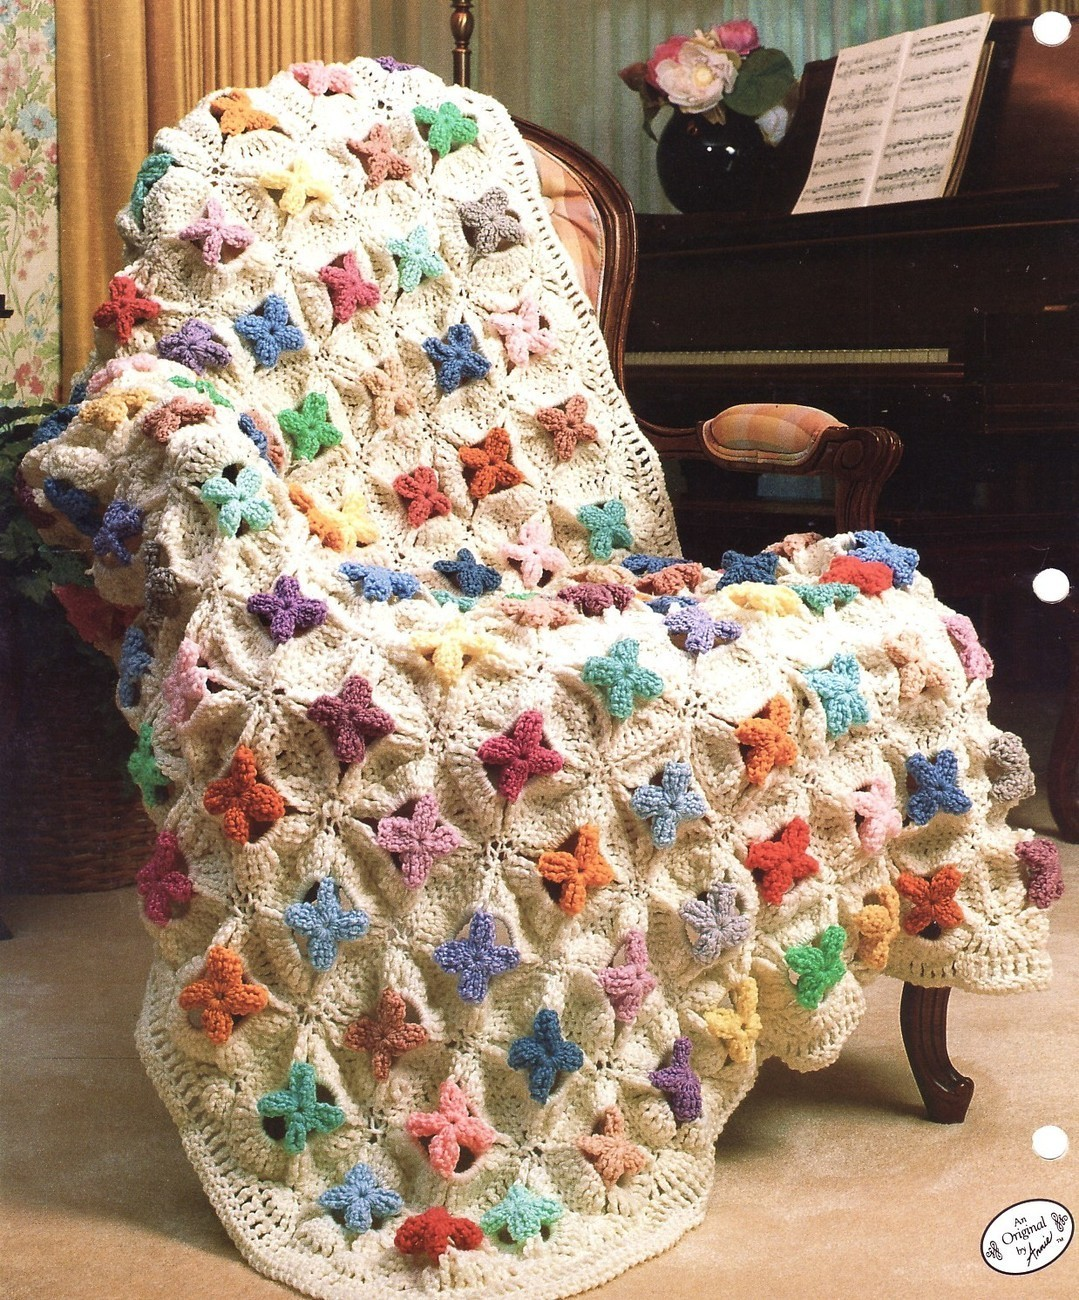 Crocheting Quilts : FREE CROCHET QUILTS PATTERNS Crochet Tutorials